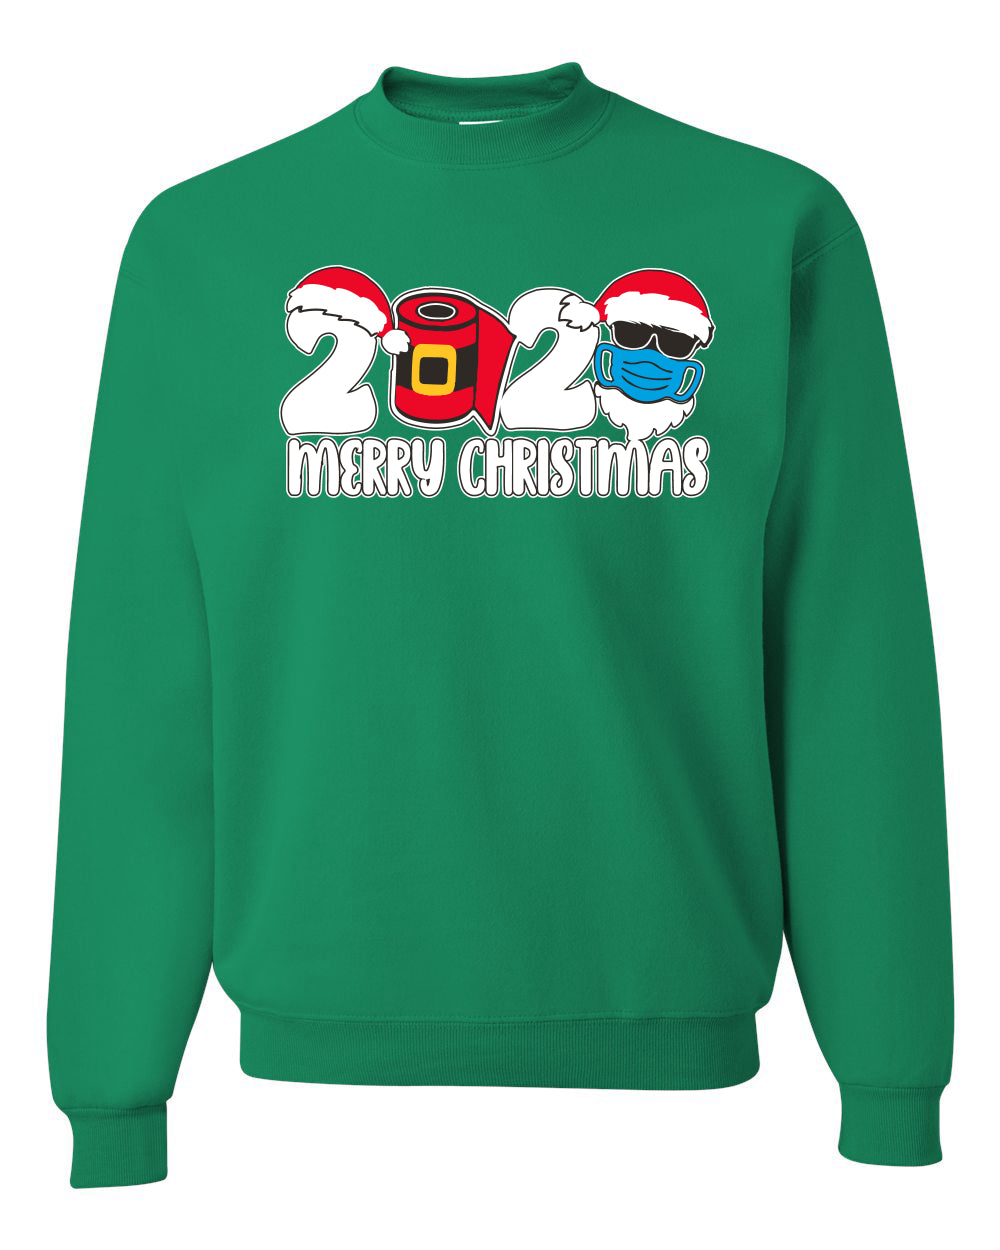 2020 Merry Christmas Pandemic Christmas Unisex Crewneck Graphic Sweatshirt